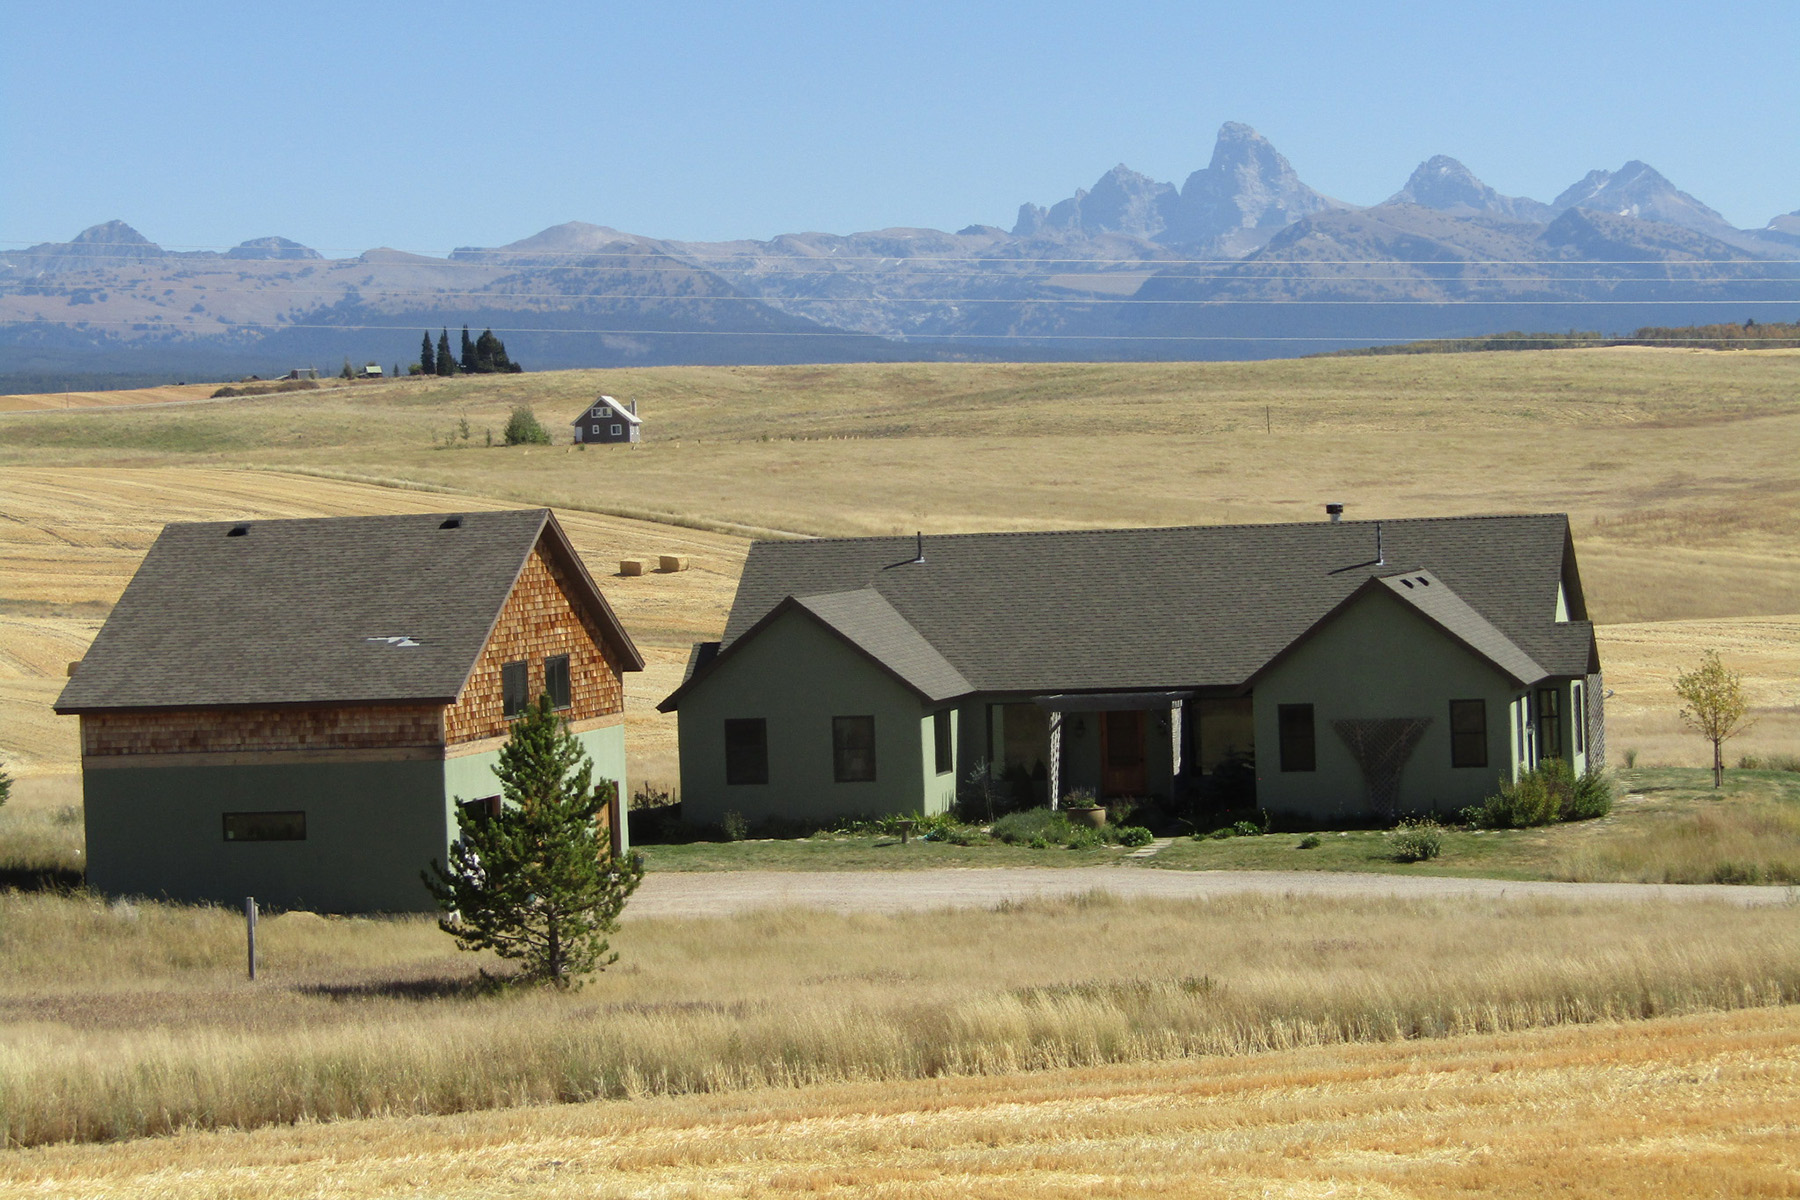 Single Family Homes for Sale at Country Home with European Flare - Teton Views 5126 Woodrush Rd Felt, Idaho 83424 United States